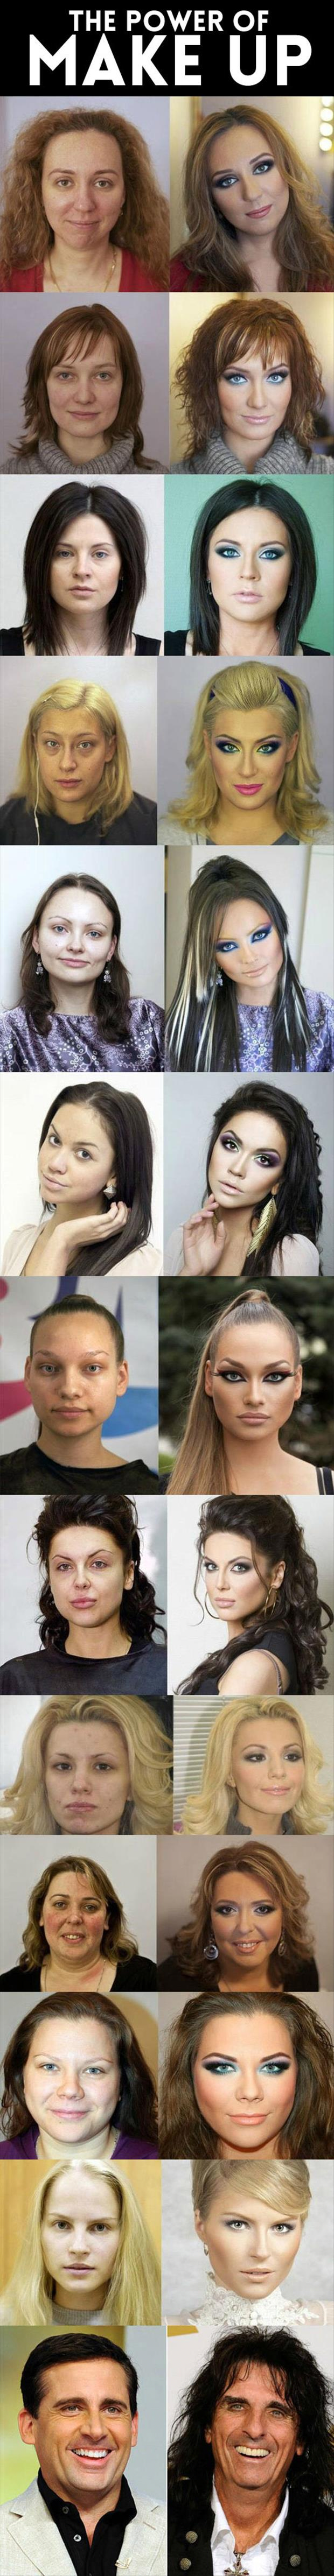 Makeup can help to greatly improve your appearance and these pictures are proof.